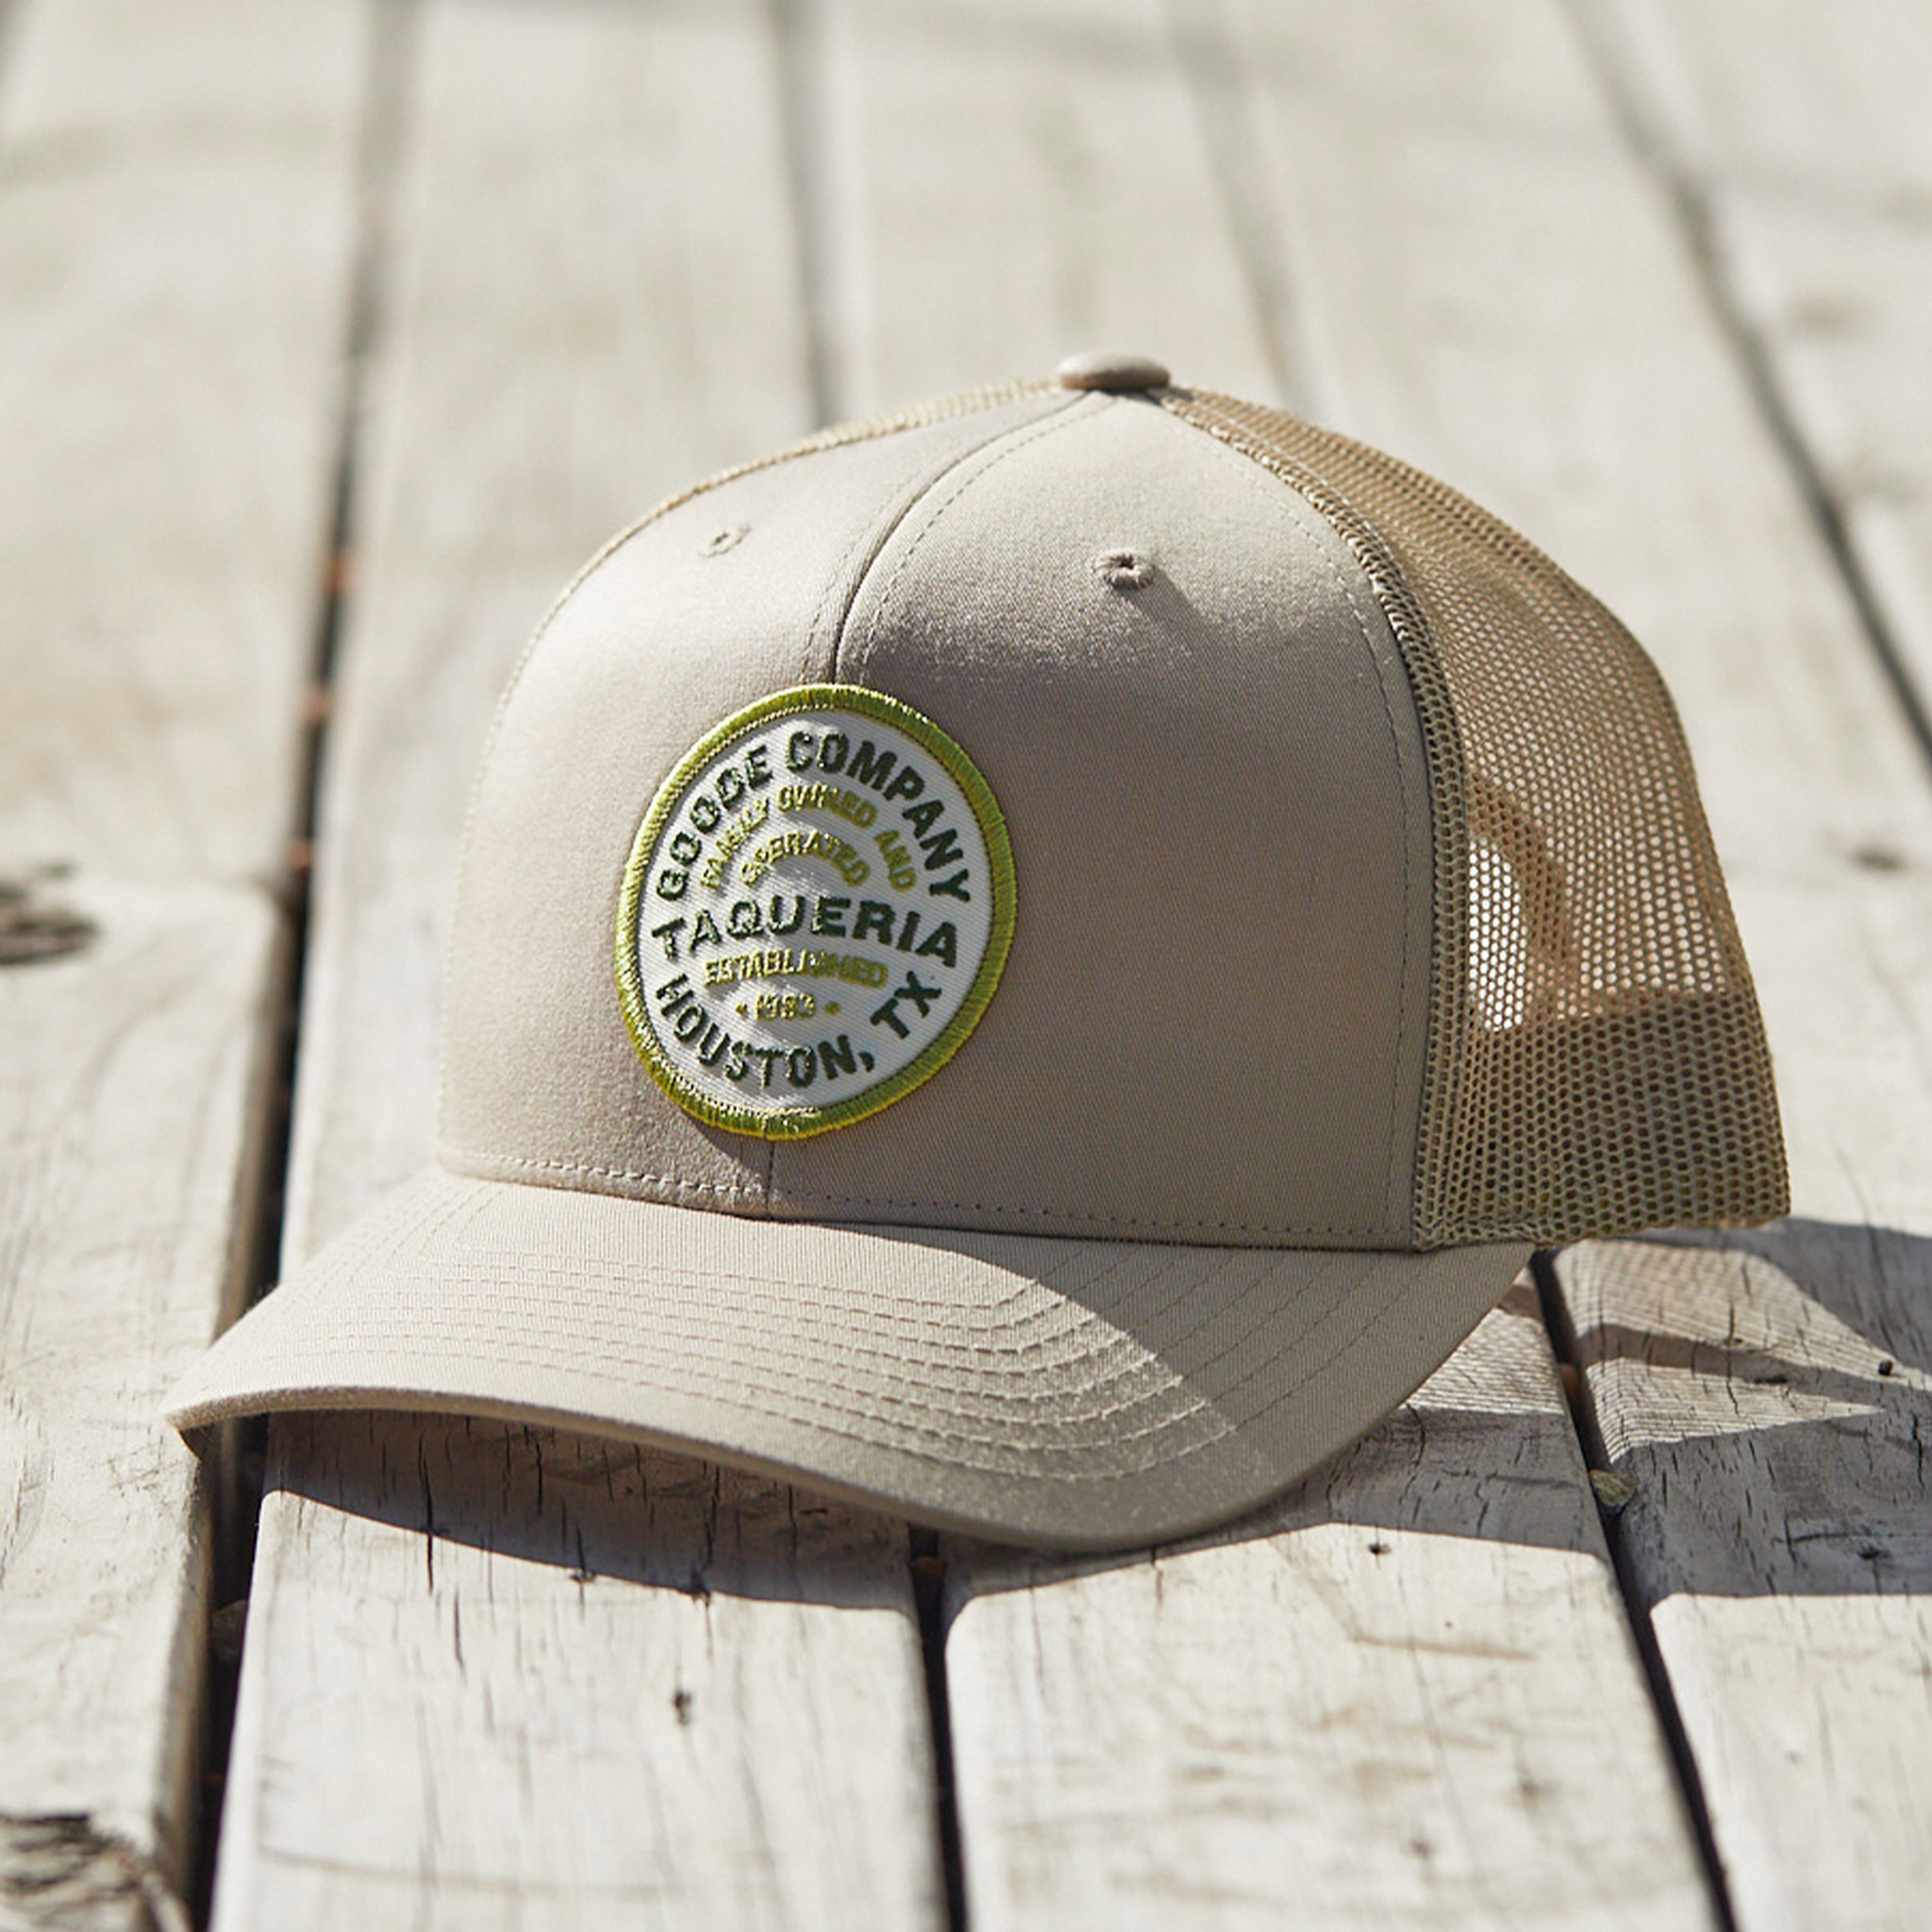 Goode Co Taqueria Emblem Patch Hat